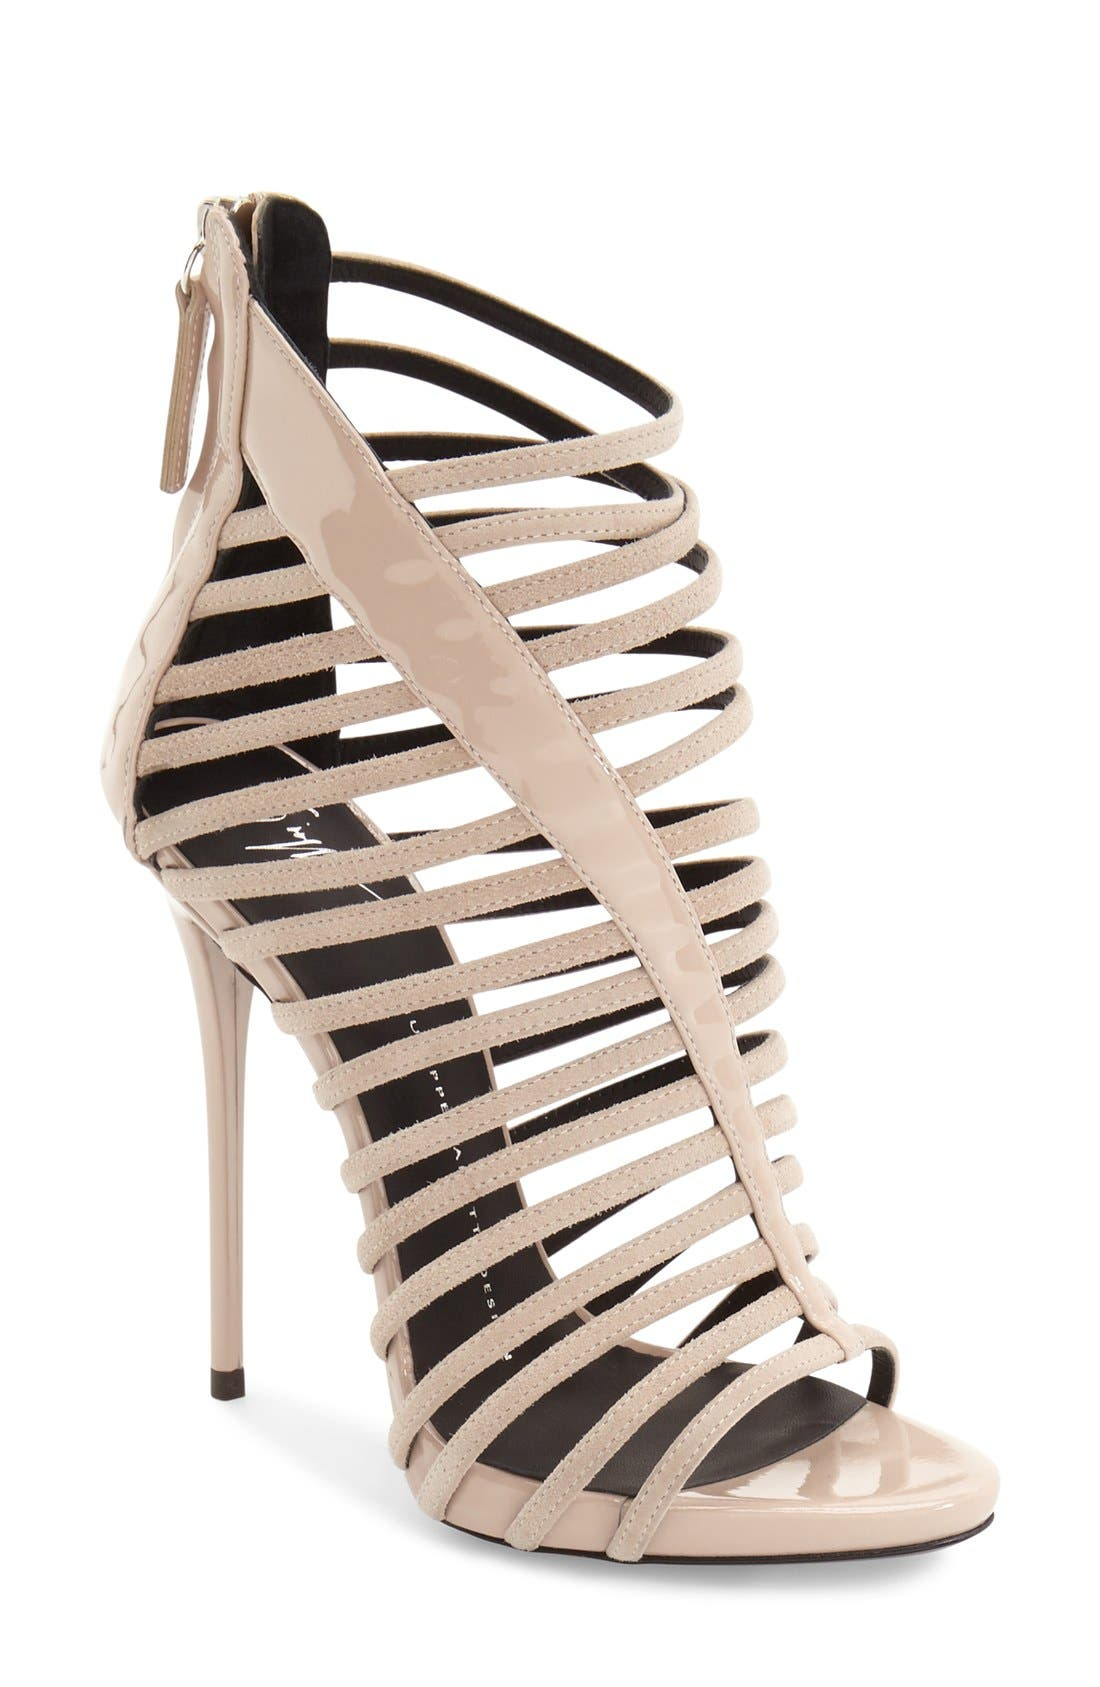 Alternate Image 1 Selected - Giuseppe Zanotti 'Coline' Cage Sandal (Women)